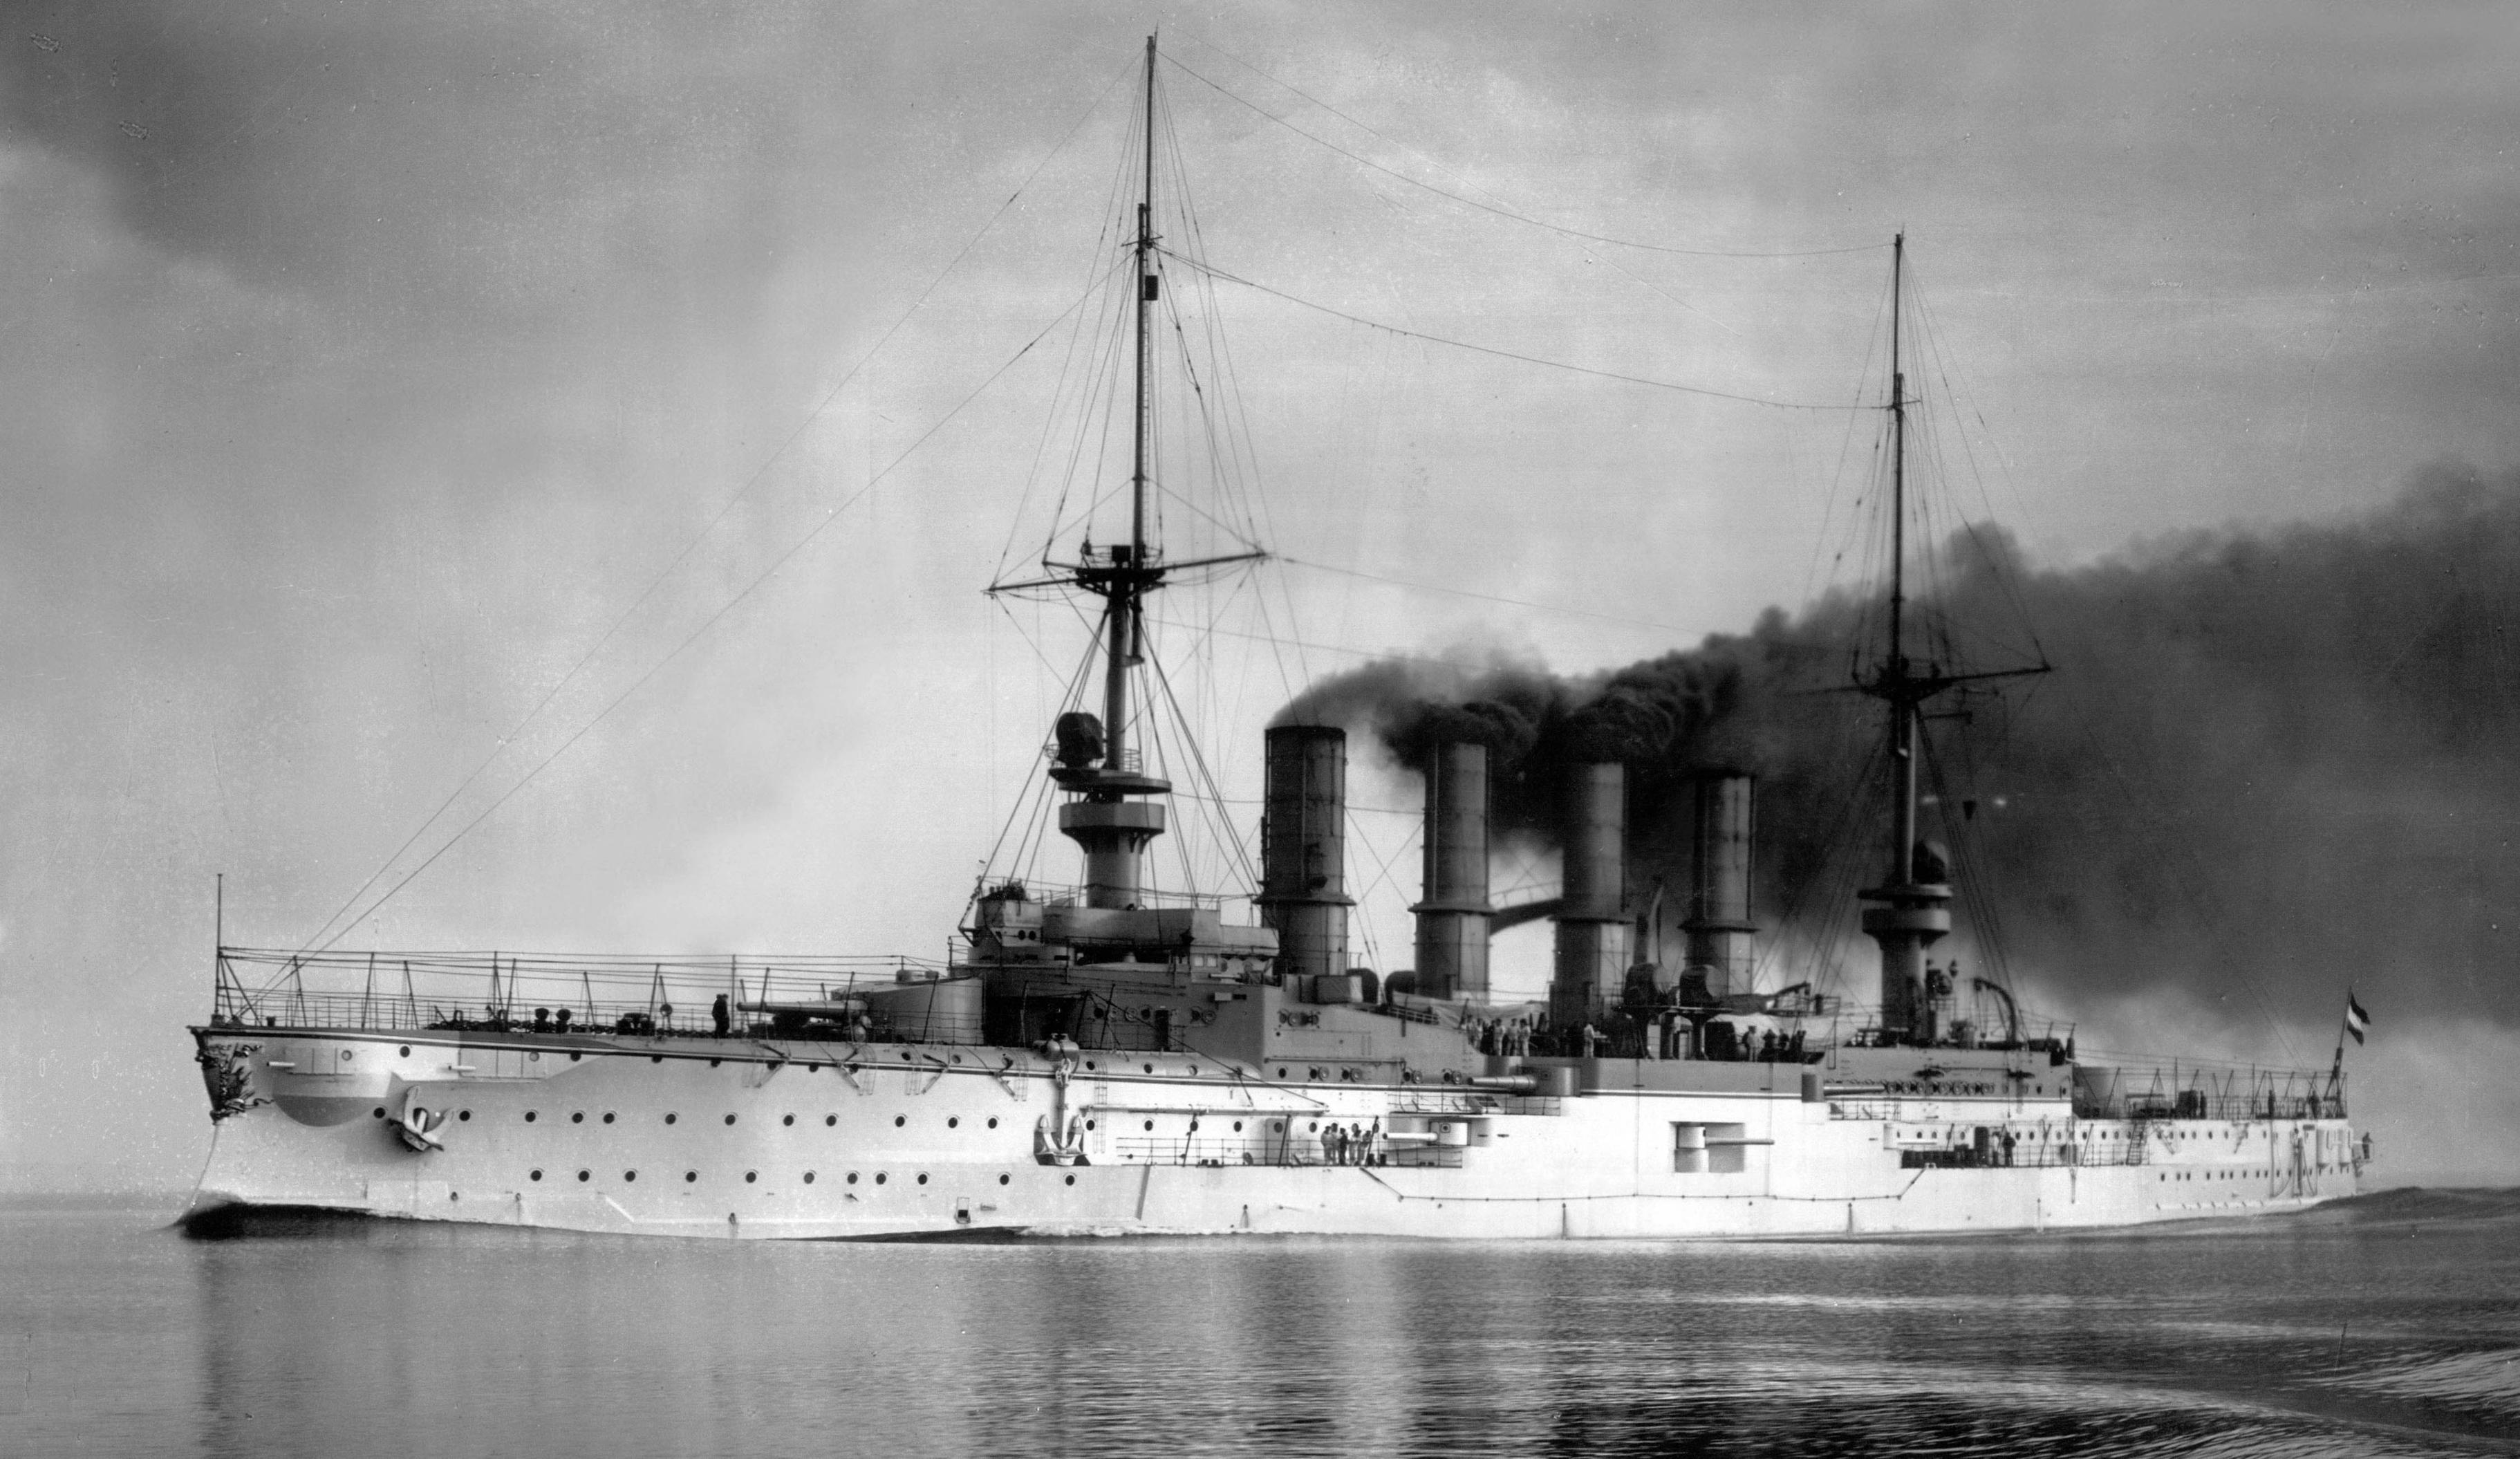 WW1 Archaeology shock: German battleship sunk by British Navy found near Falklands